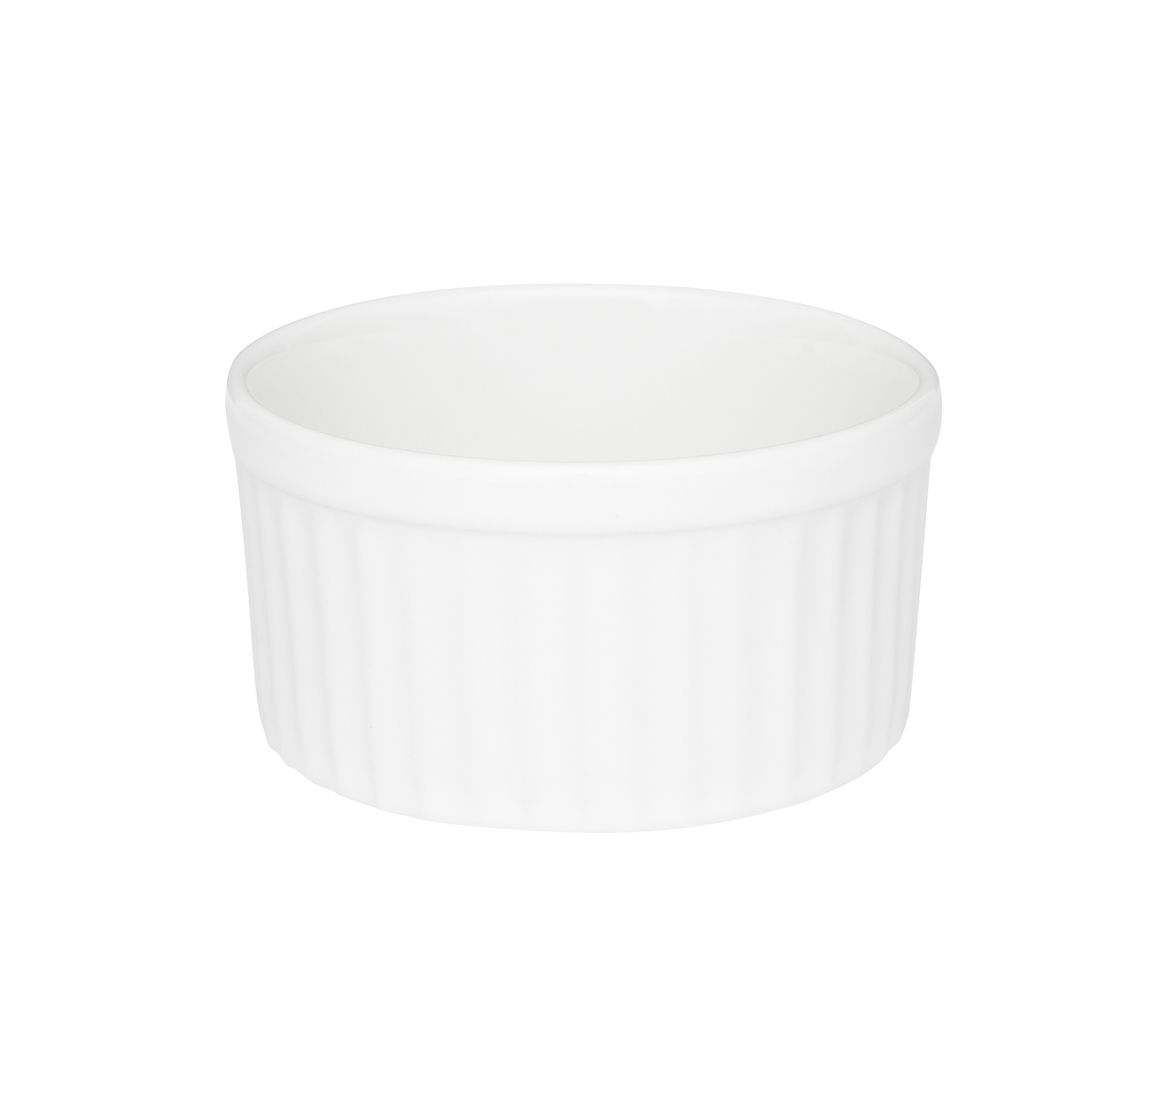 Tigela Ramequin 10X5Cm 180Ml - Branco - Oxford Porcelanas